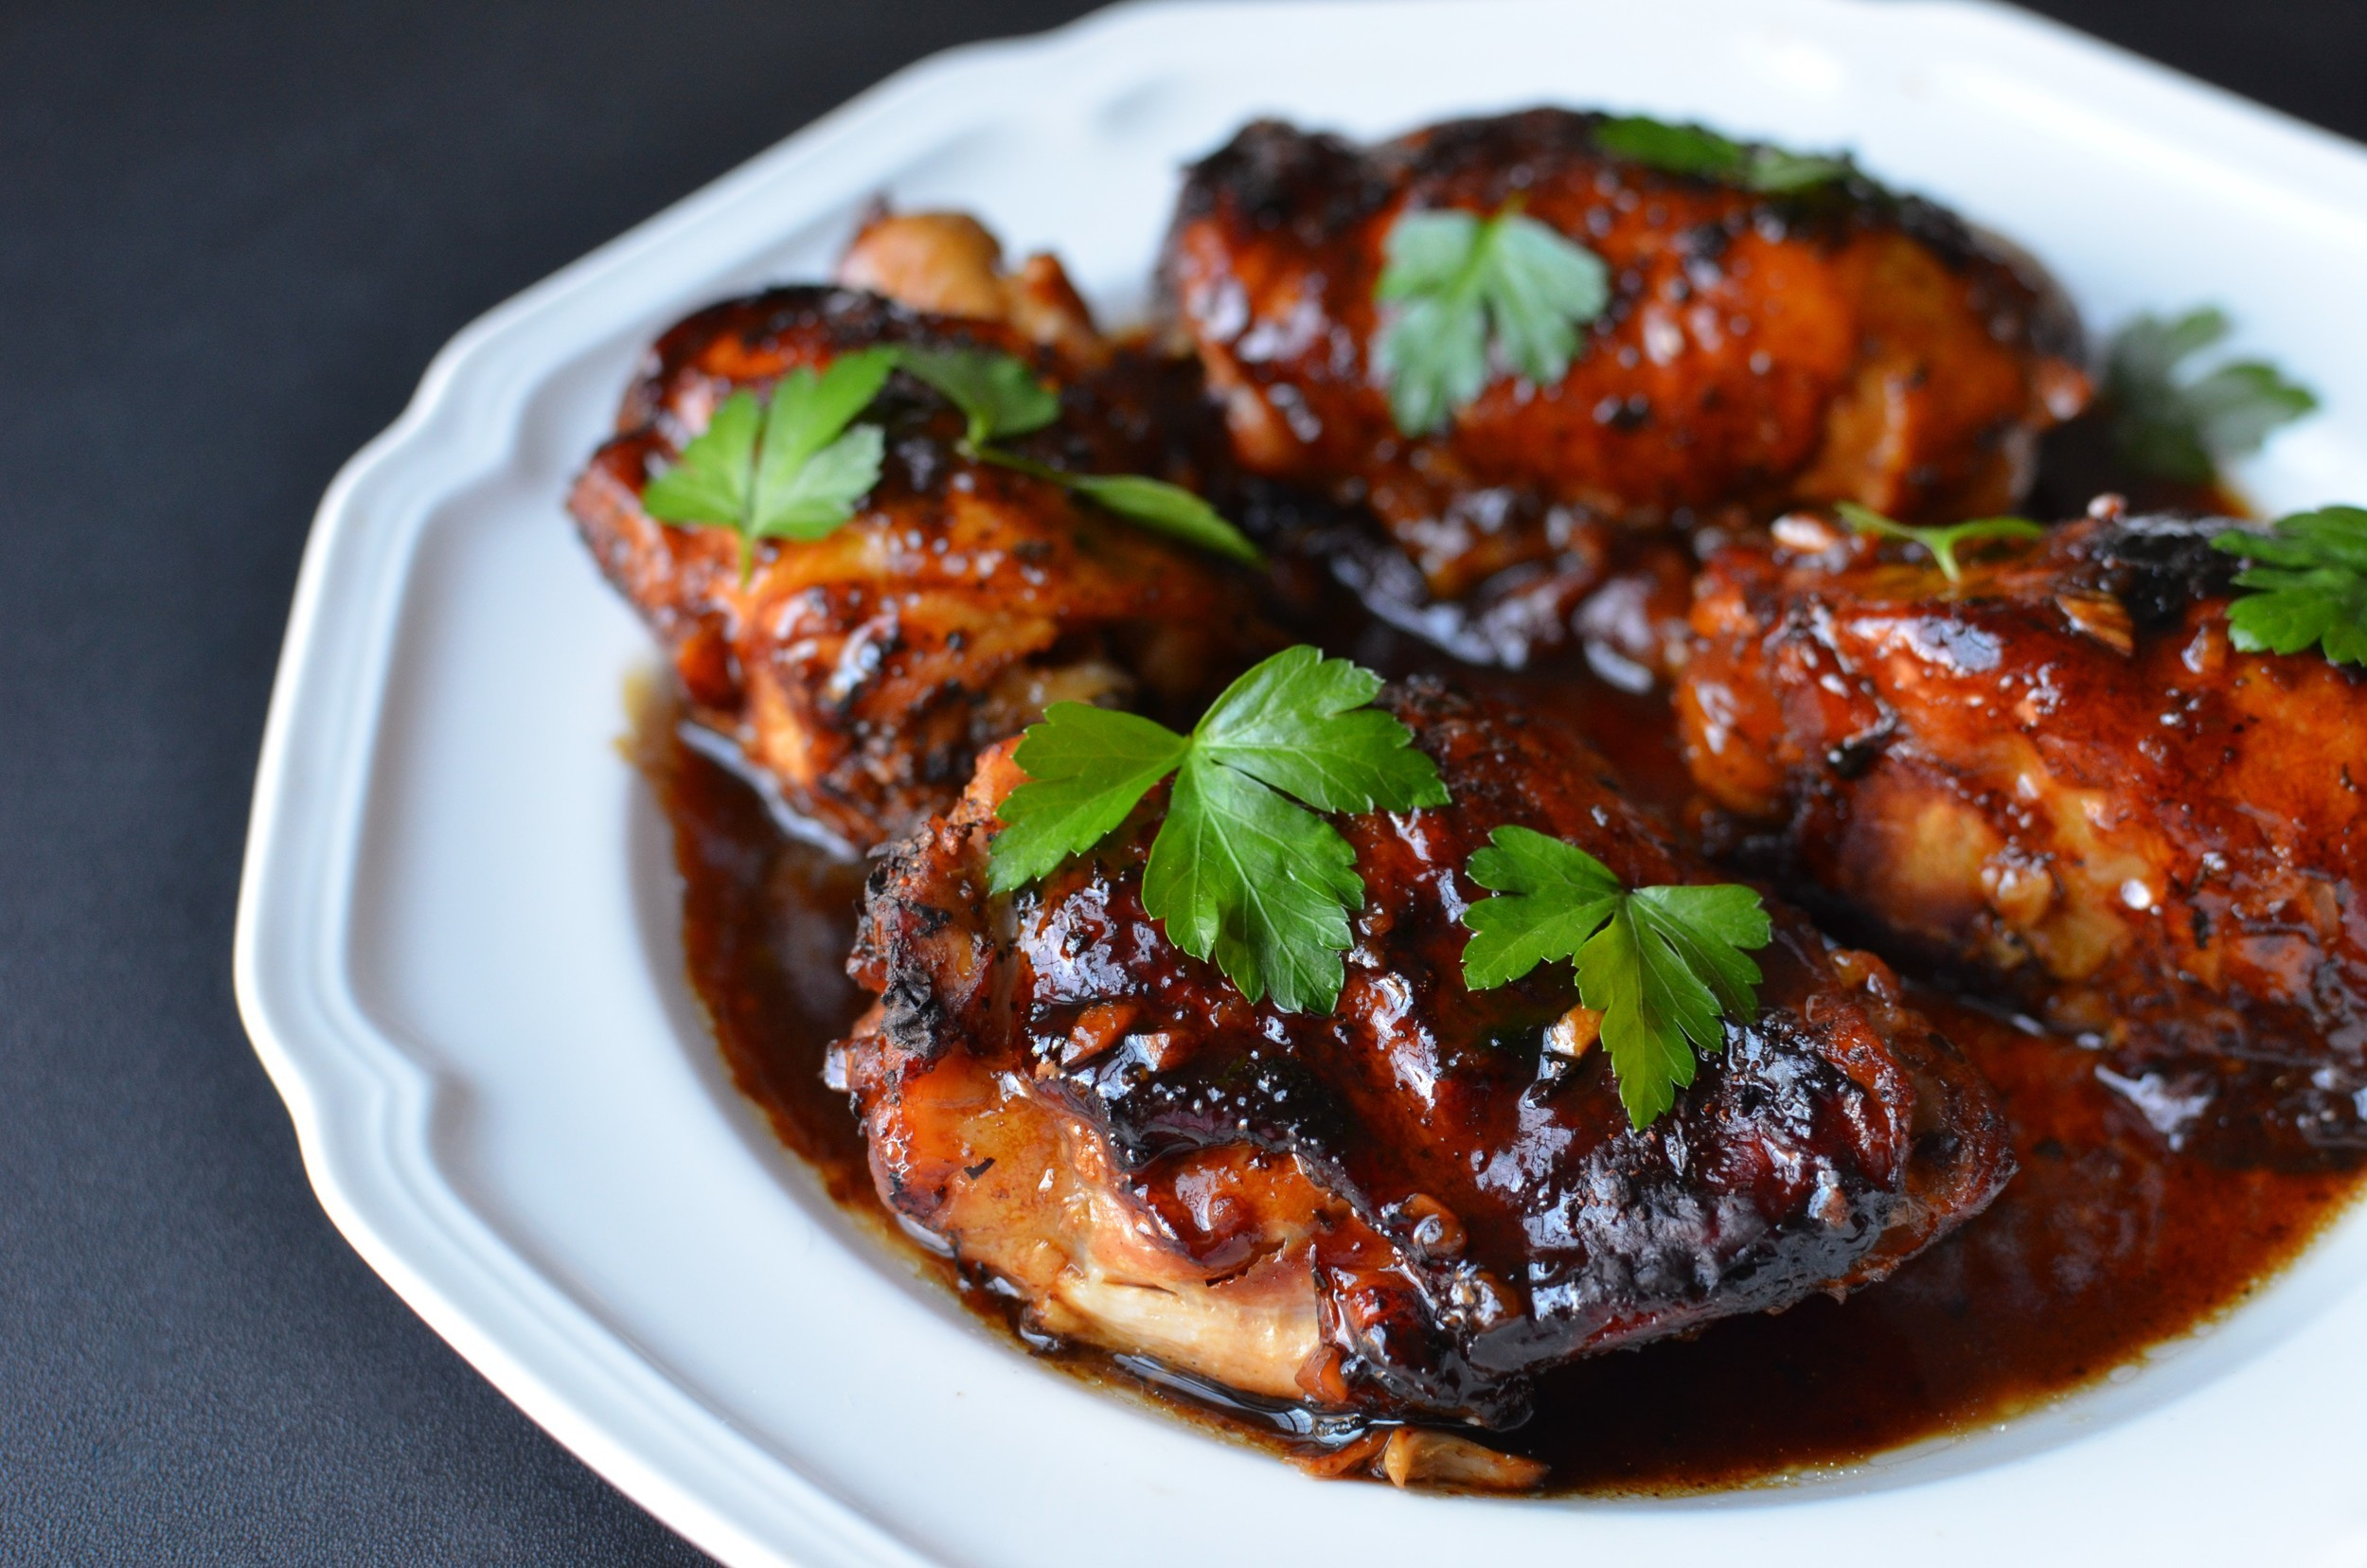 Chicken recipe with balsamic reduction 2022